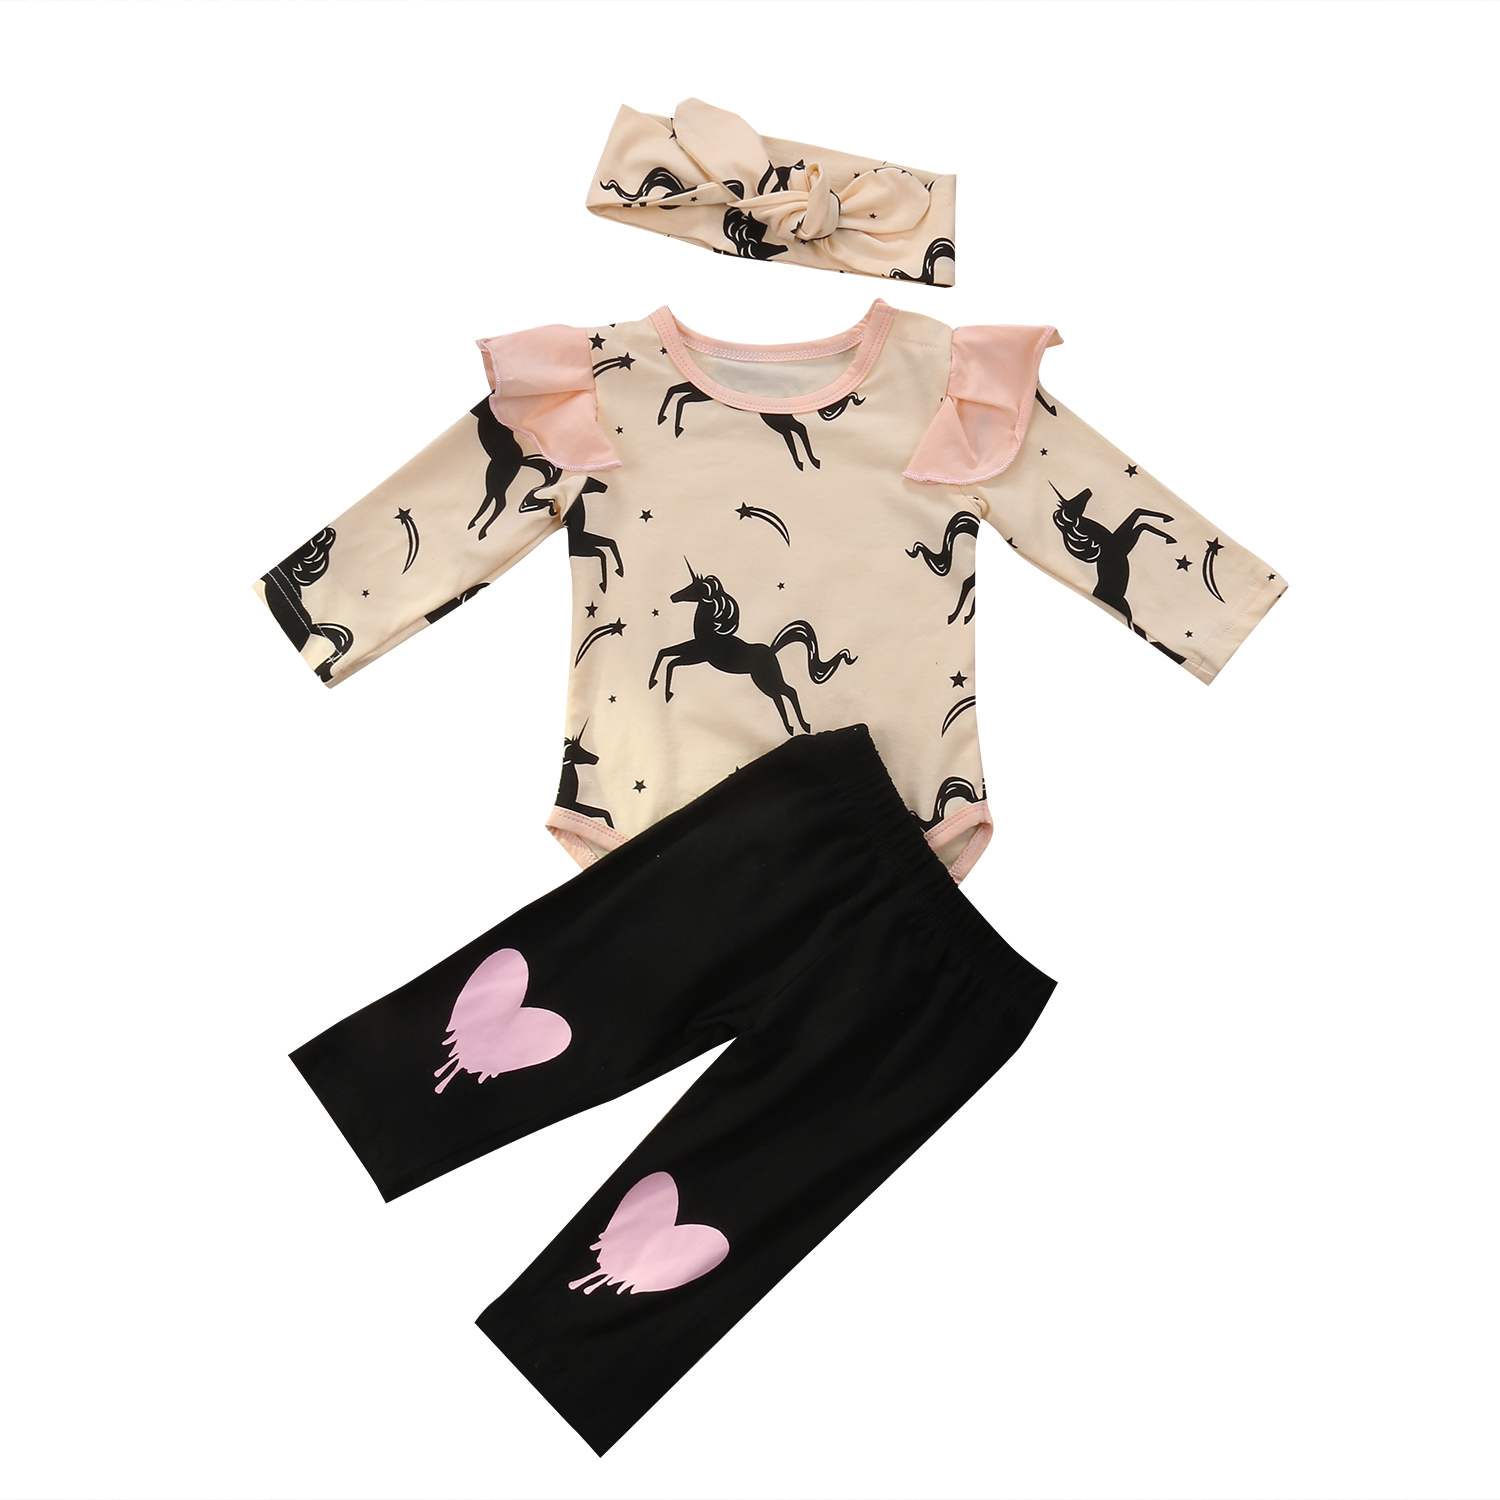 3PCS Newborn Kids Baby Girl Unicorn Clothes Ruffled Long Sleeve Romper Pants Headband Spring Summer Outfit Set